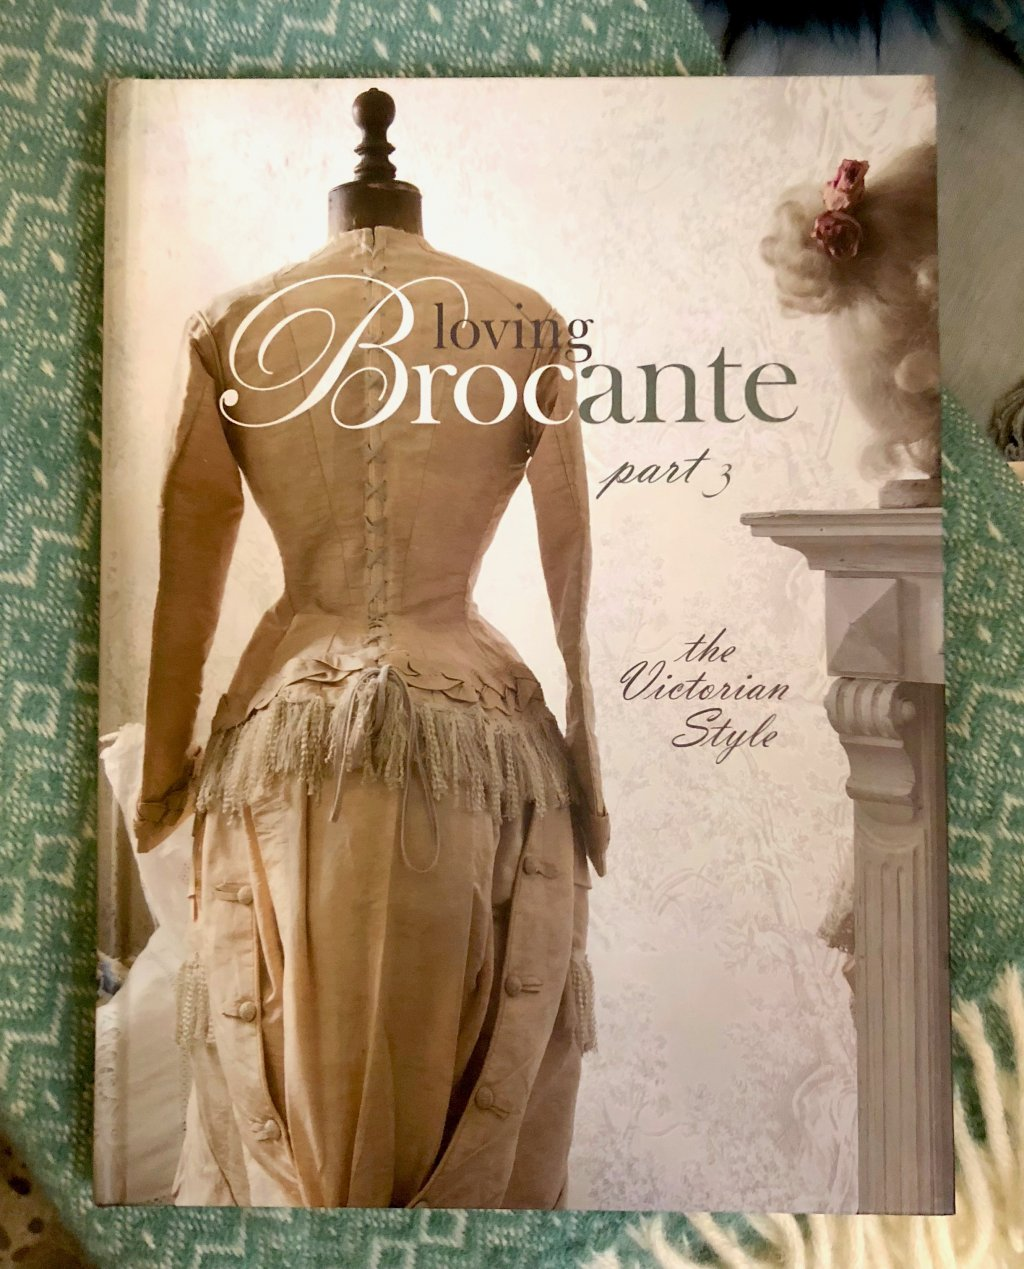 Loving Brocante - Part 3 - The Victorian Style